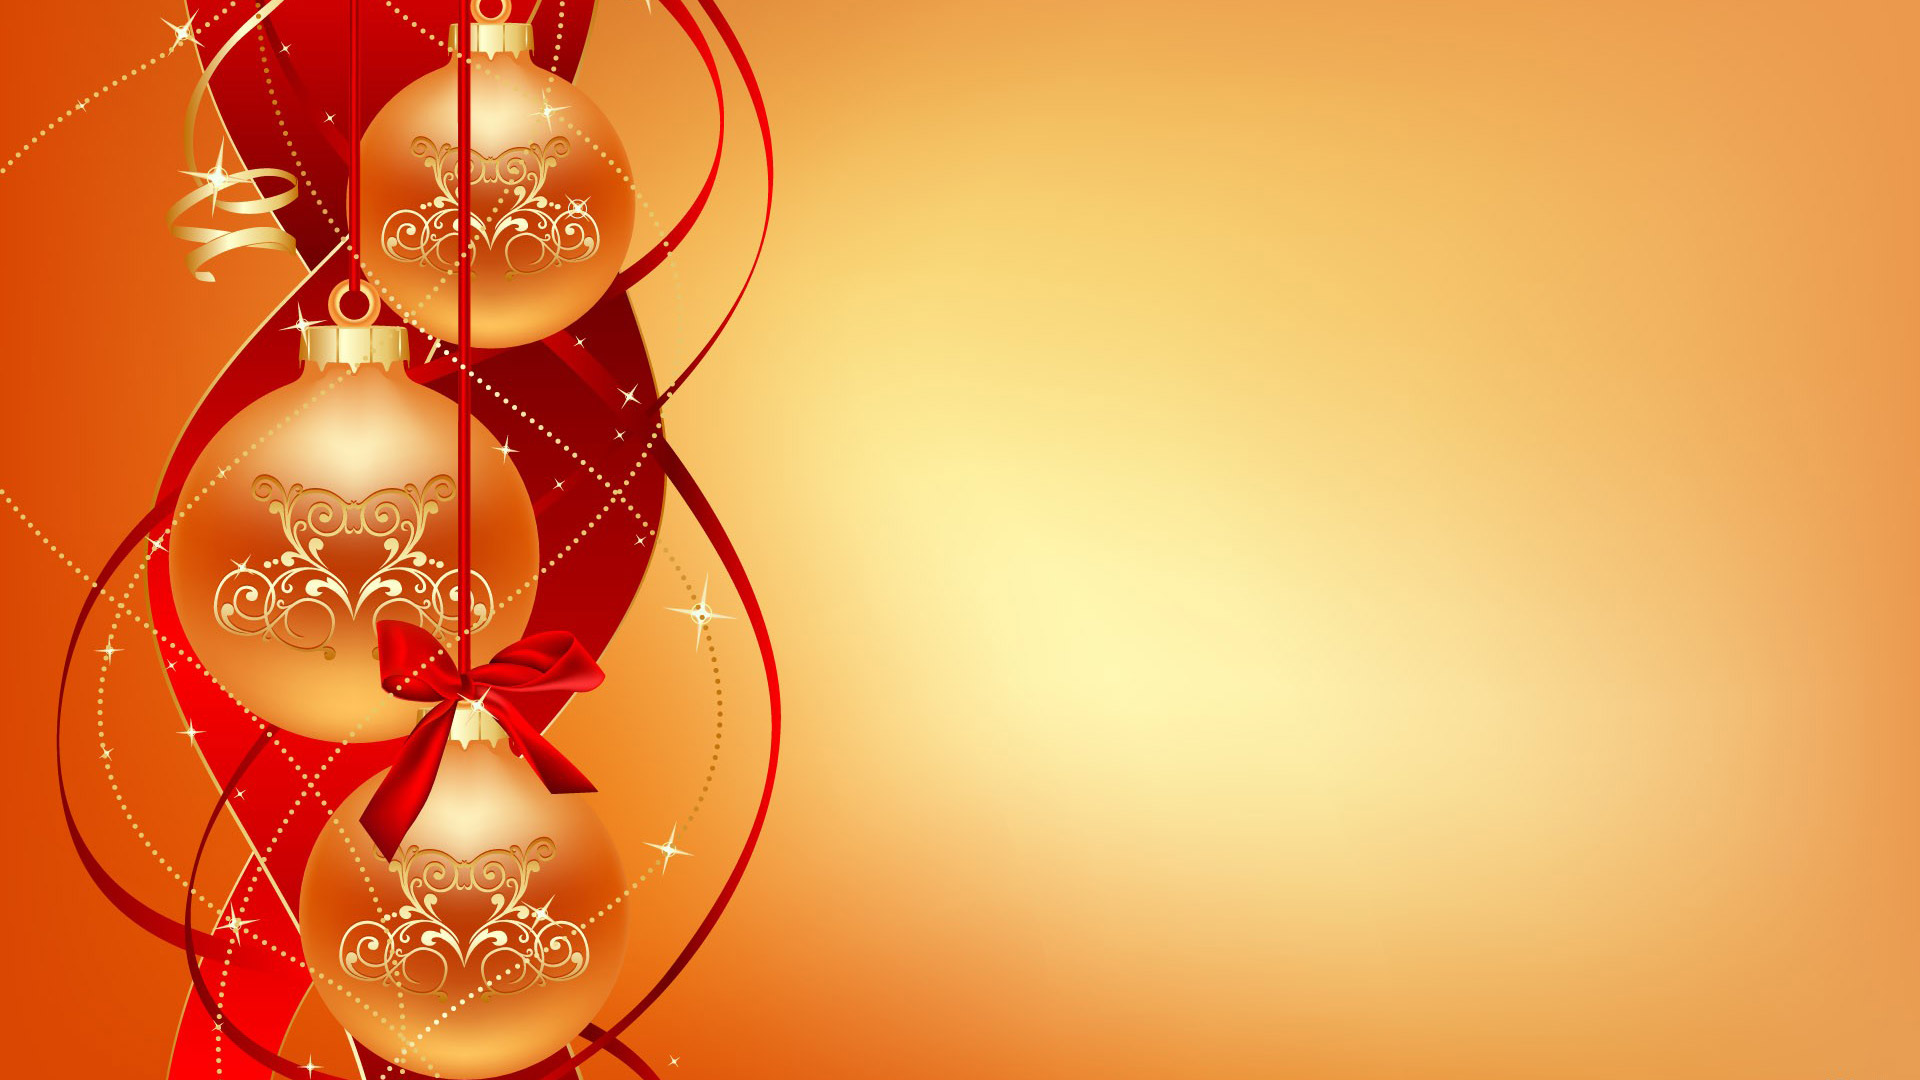 Pics Photos   Cool War Backgrounds New Year 2013 Wallpaper 1920x1080